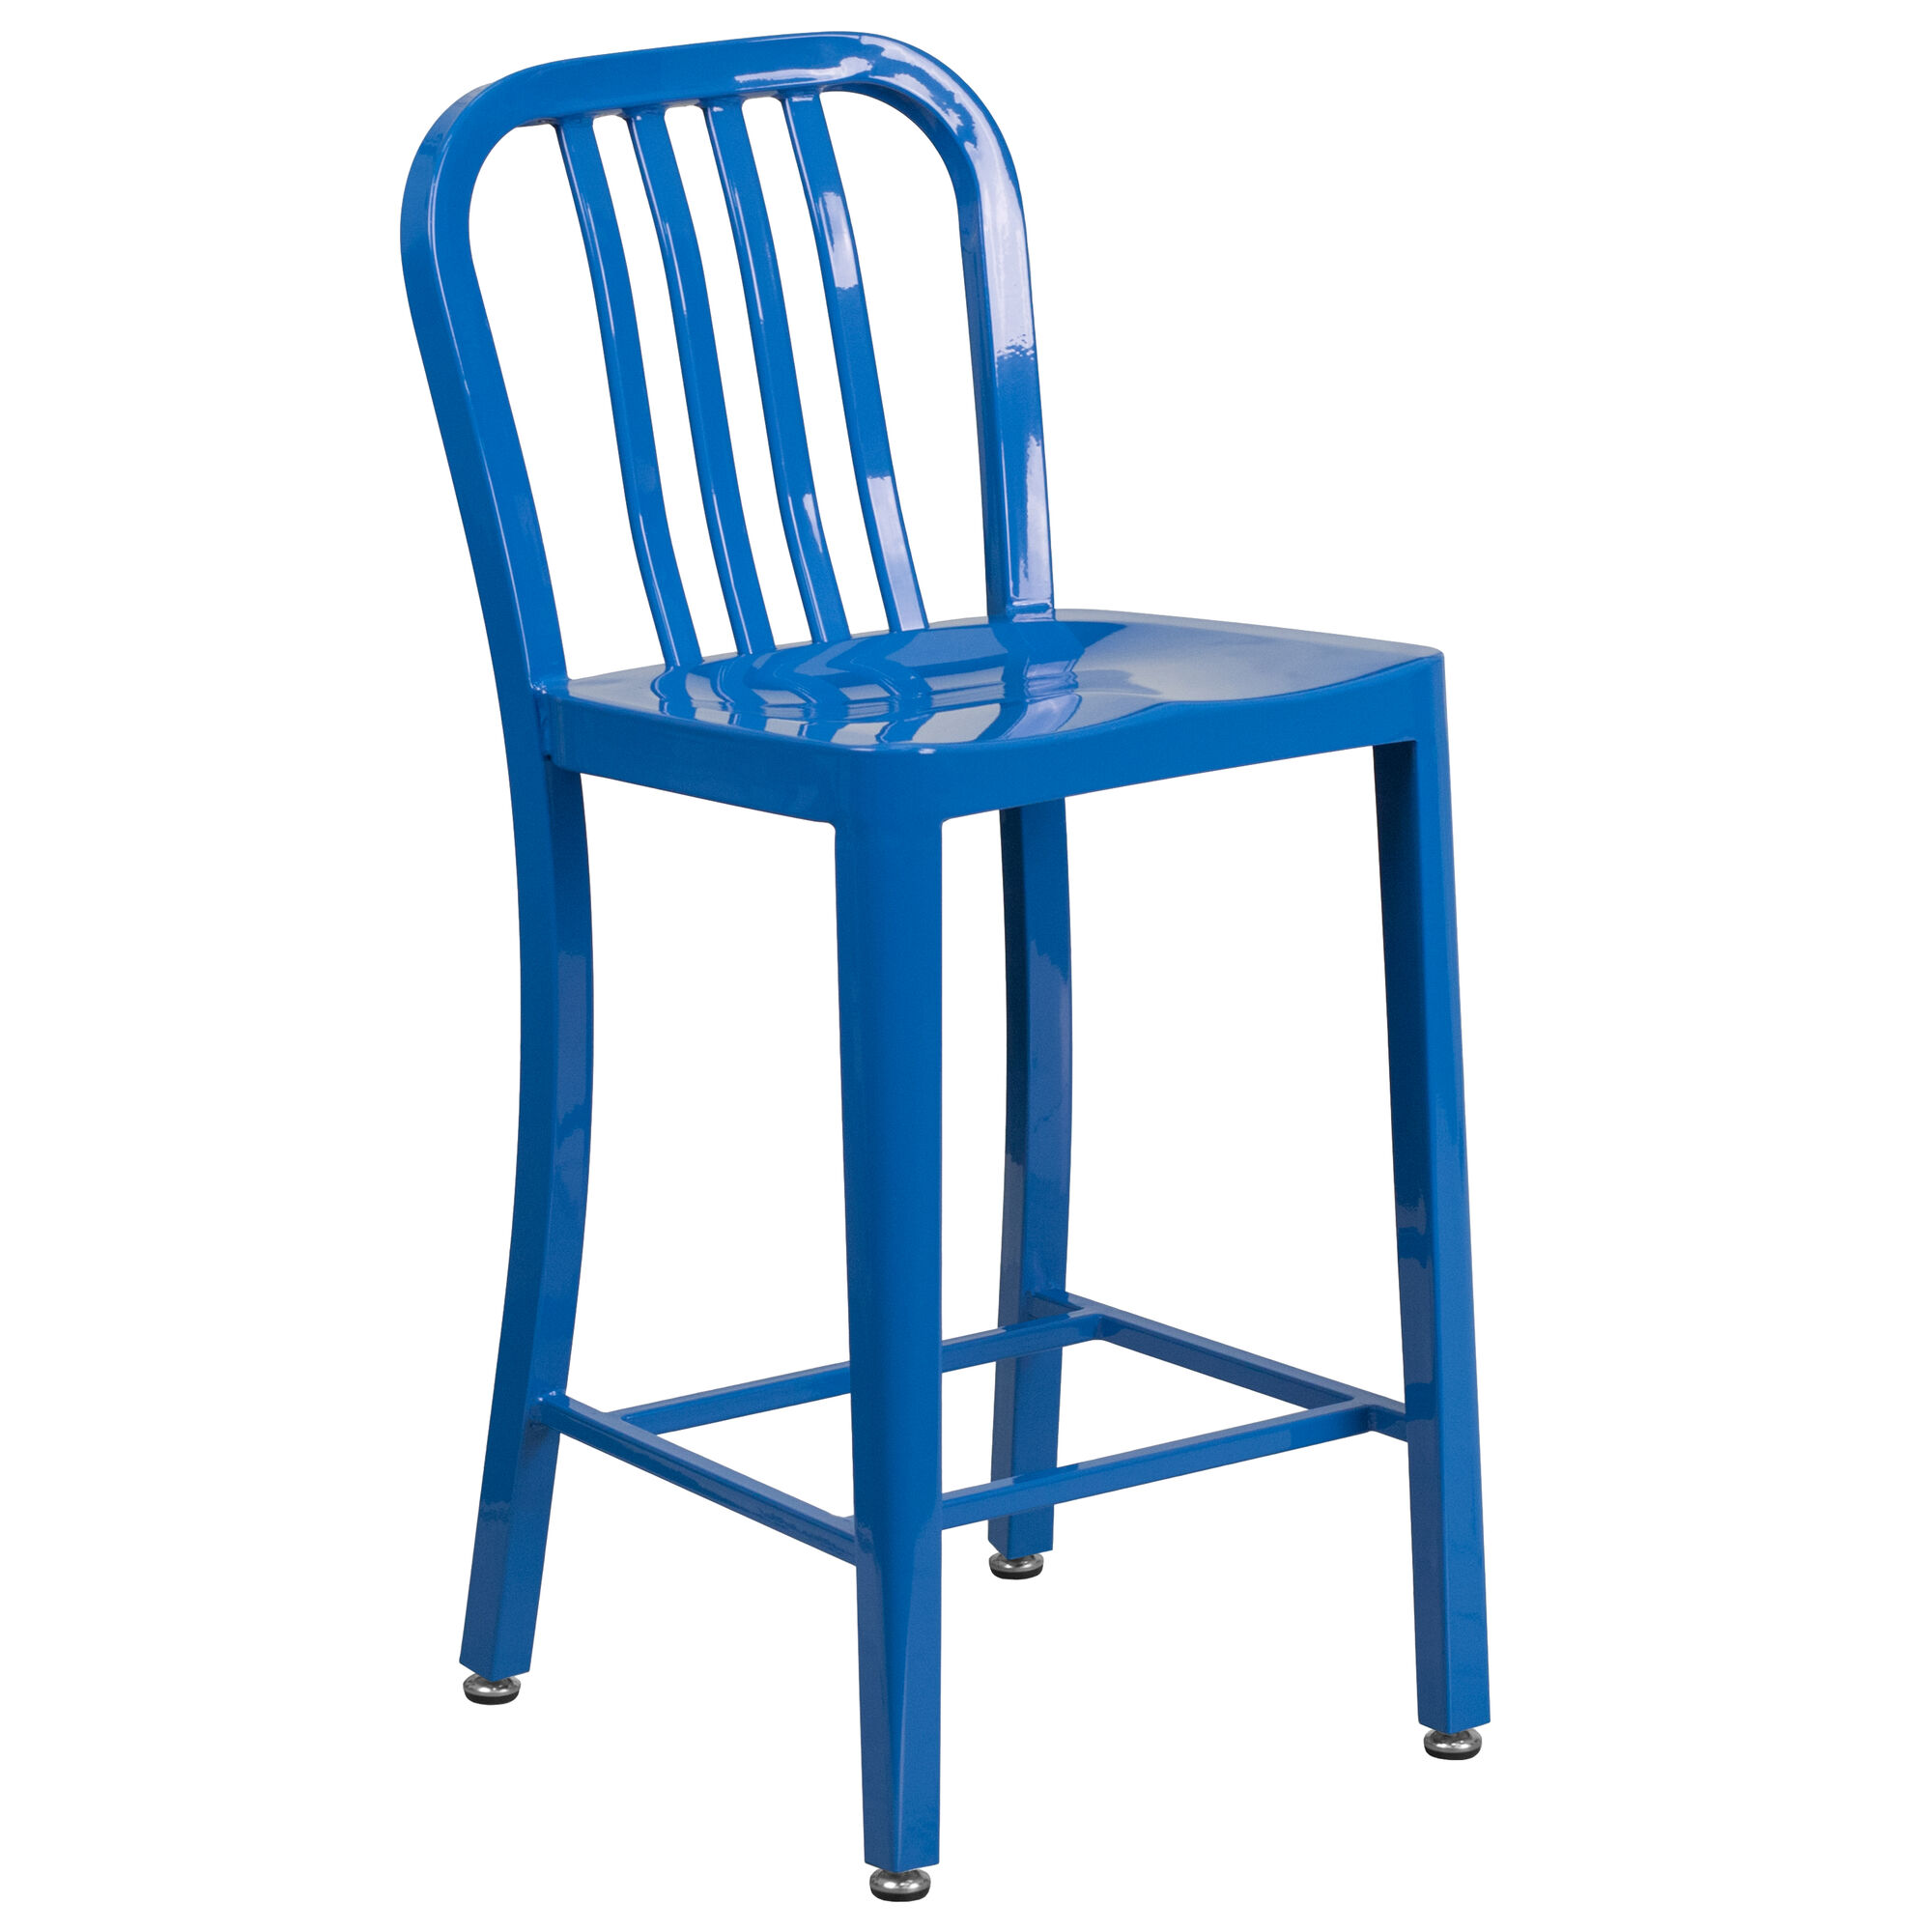 Awesome Commercial Grade 24 High Blue Metal Indoor Outdoor Counter Height Stool With Vertical Slat Back Machost Co Dining Chair Design Ideas Machostcouk